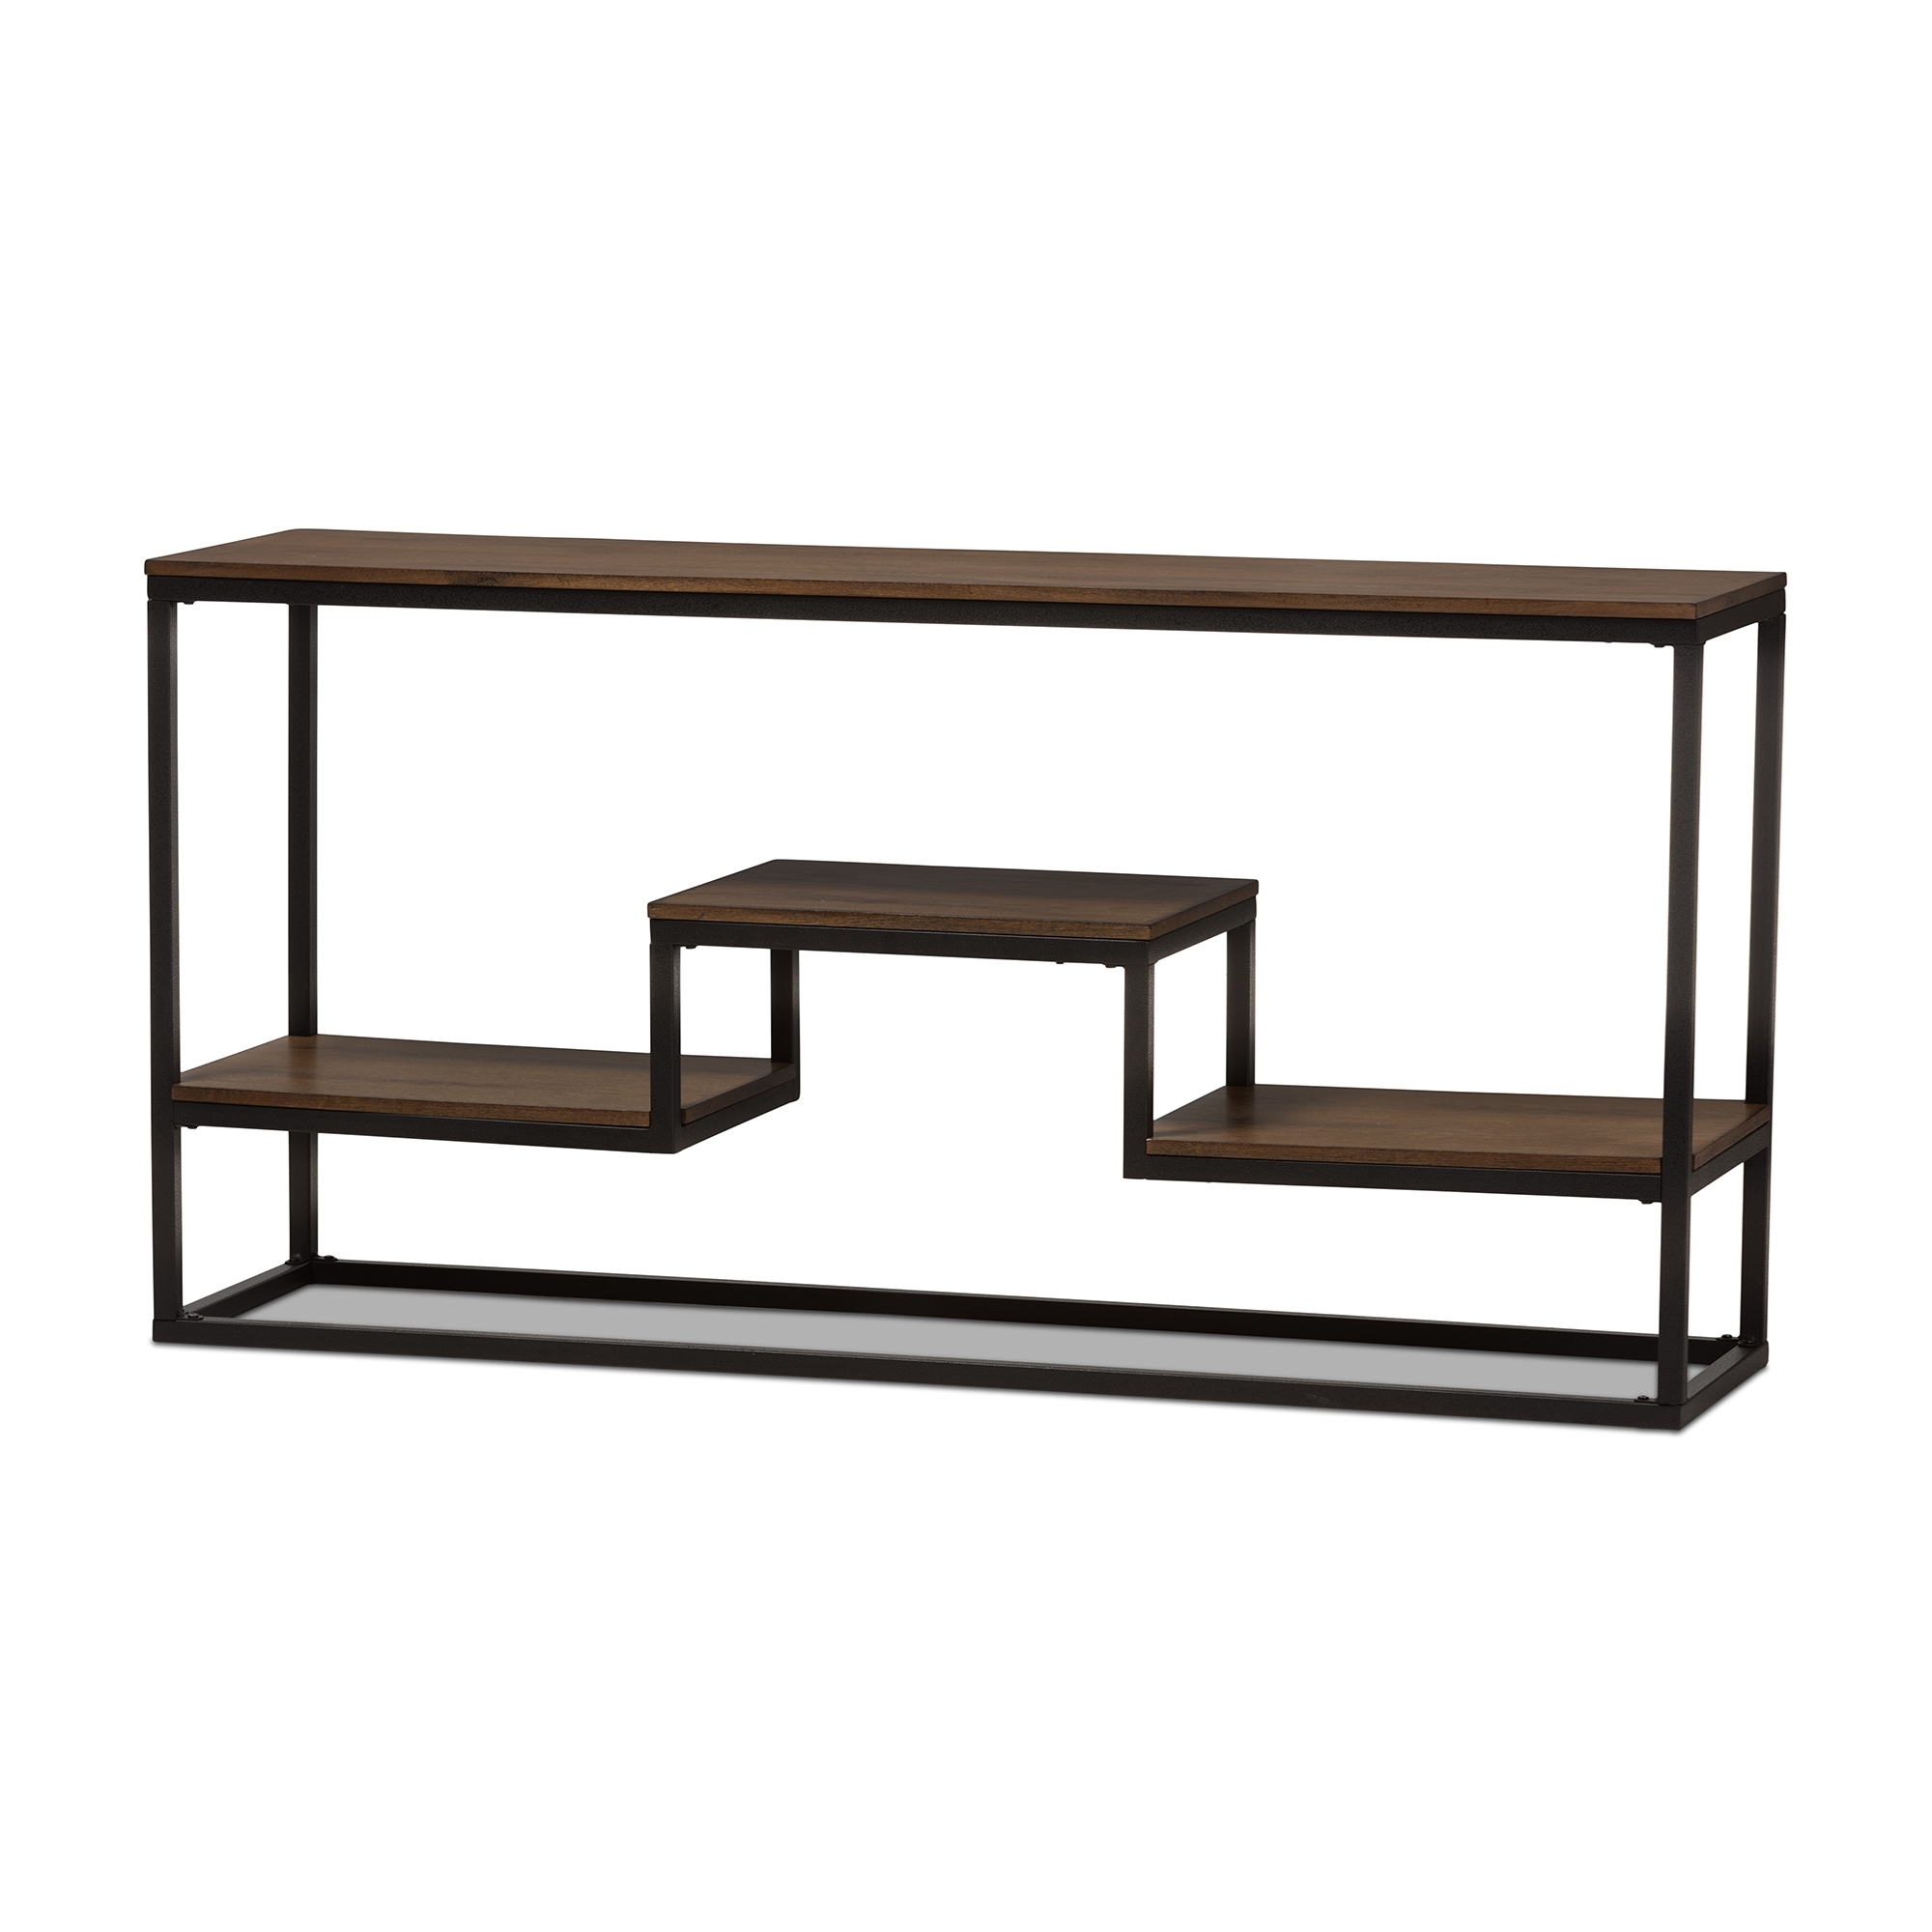 metal console table. baxton studio doreen rustic industrial style antique black textured finished metal distressed wood console table i